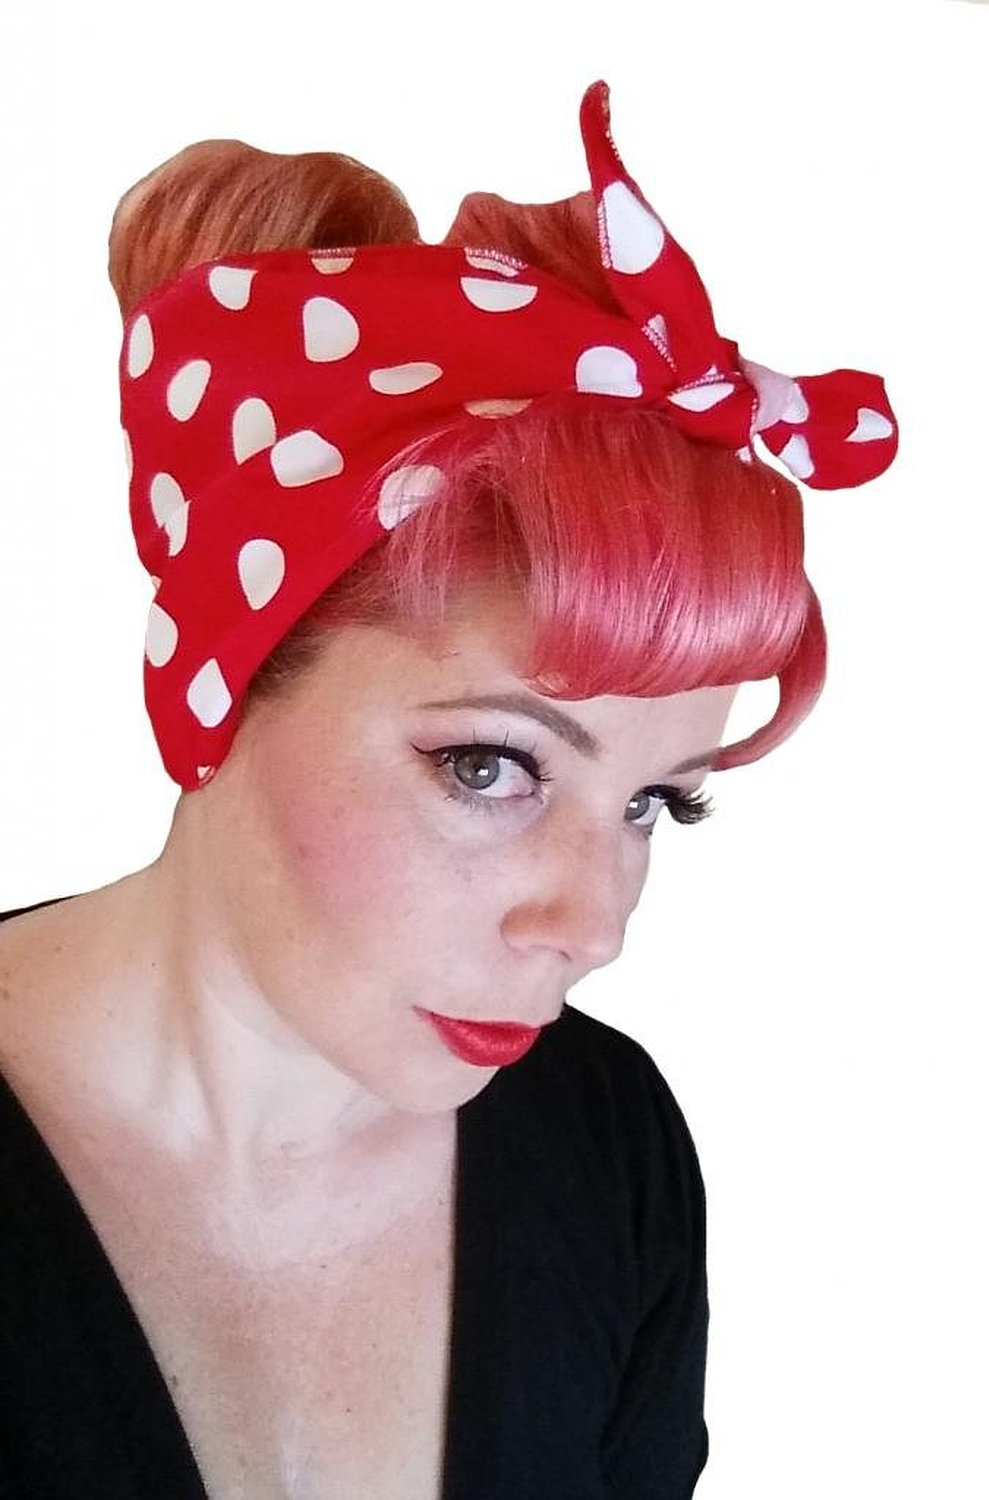 Amazon.com: spellbound bows red with big white polka dots double wide headwrap: clothing